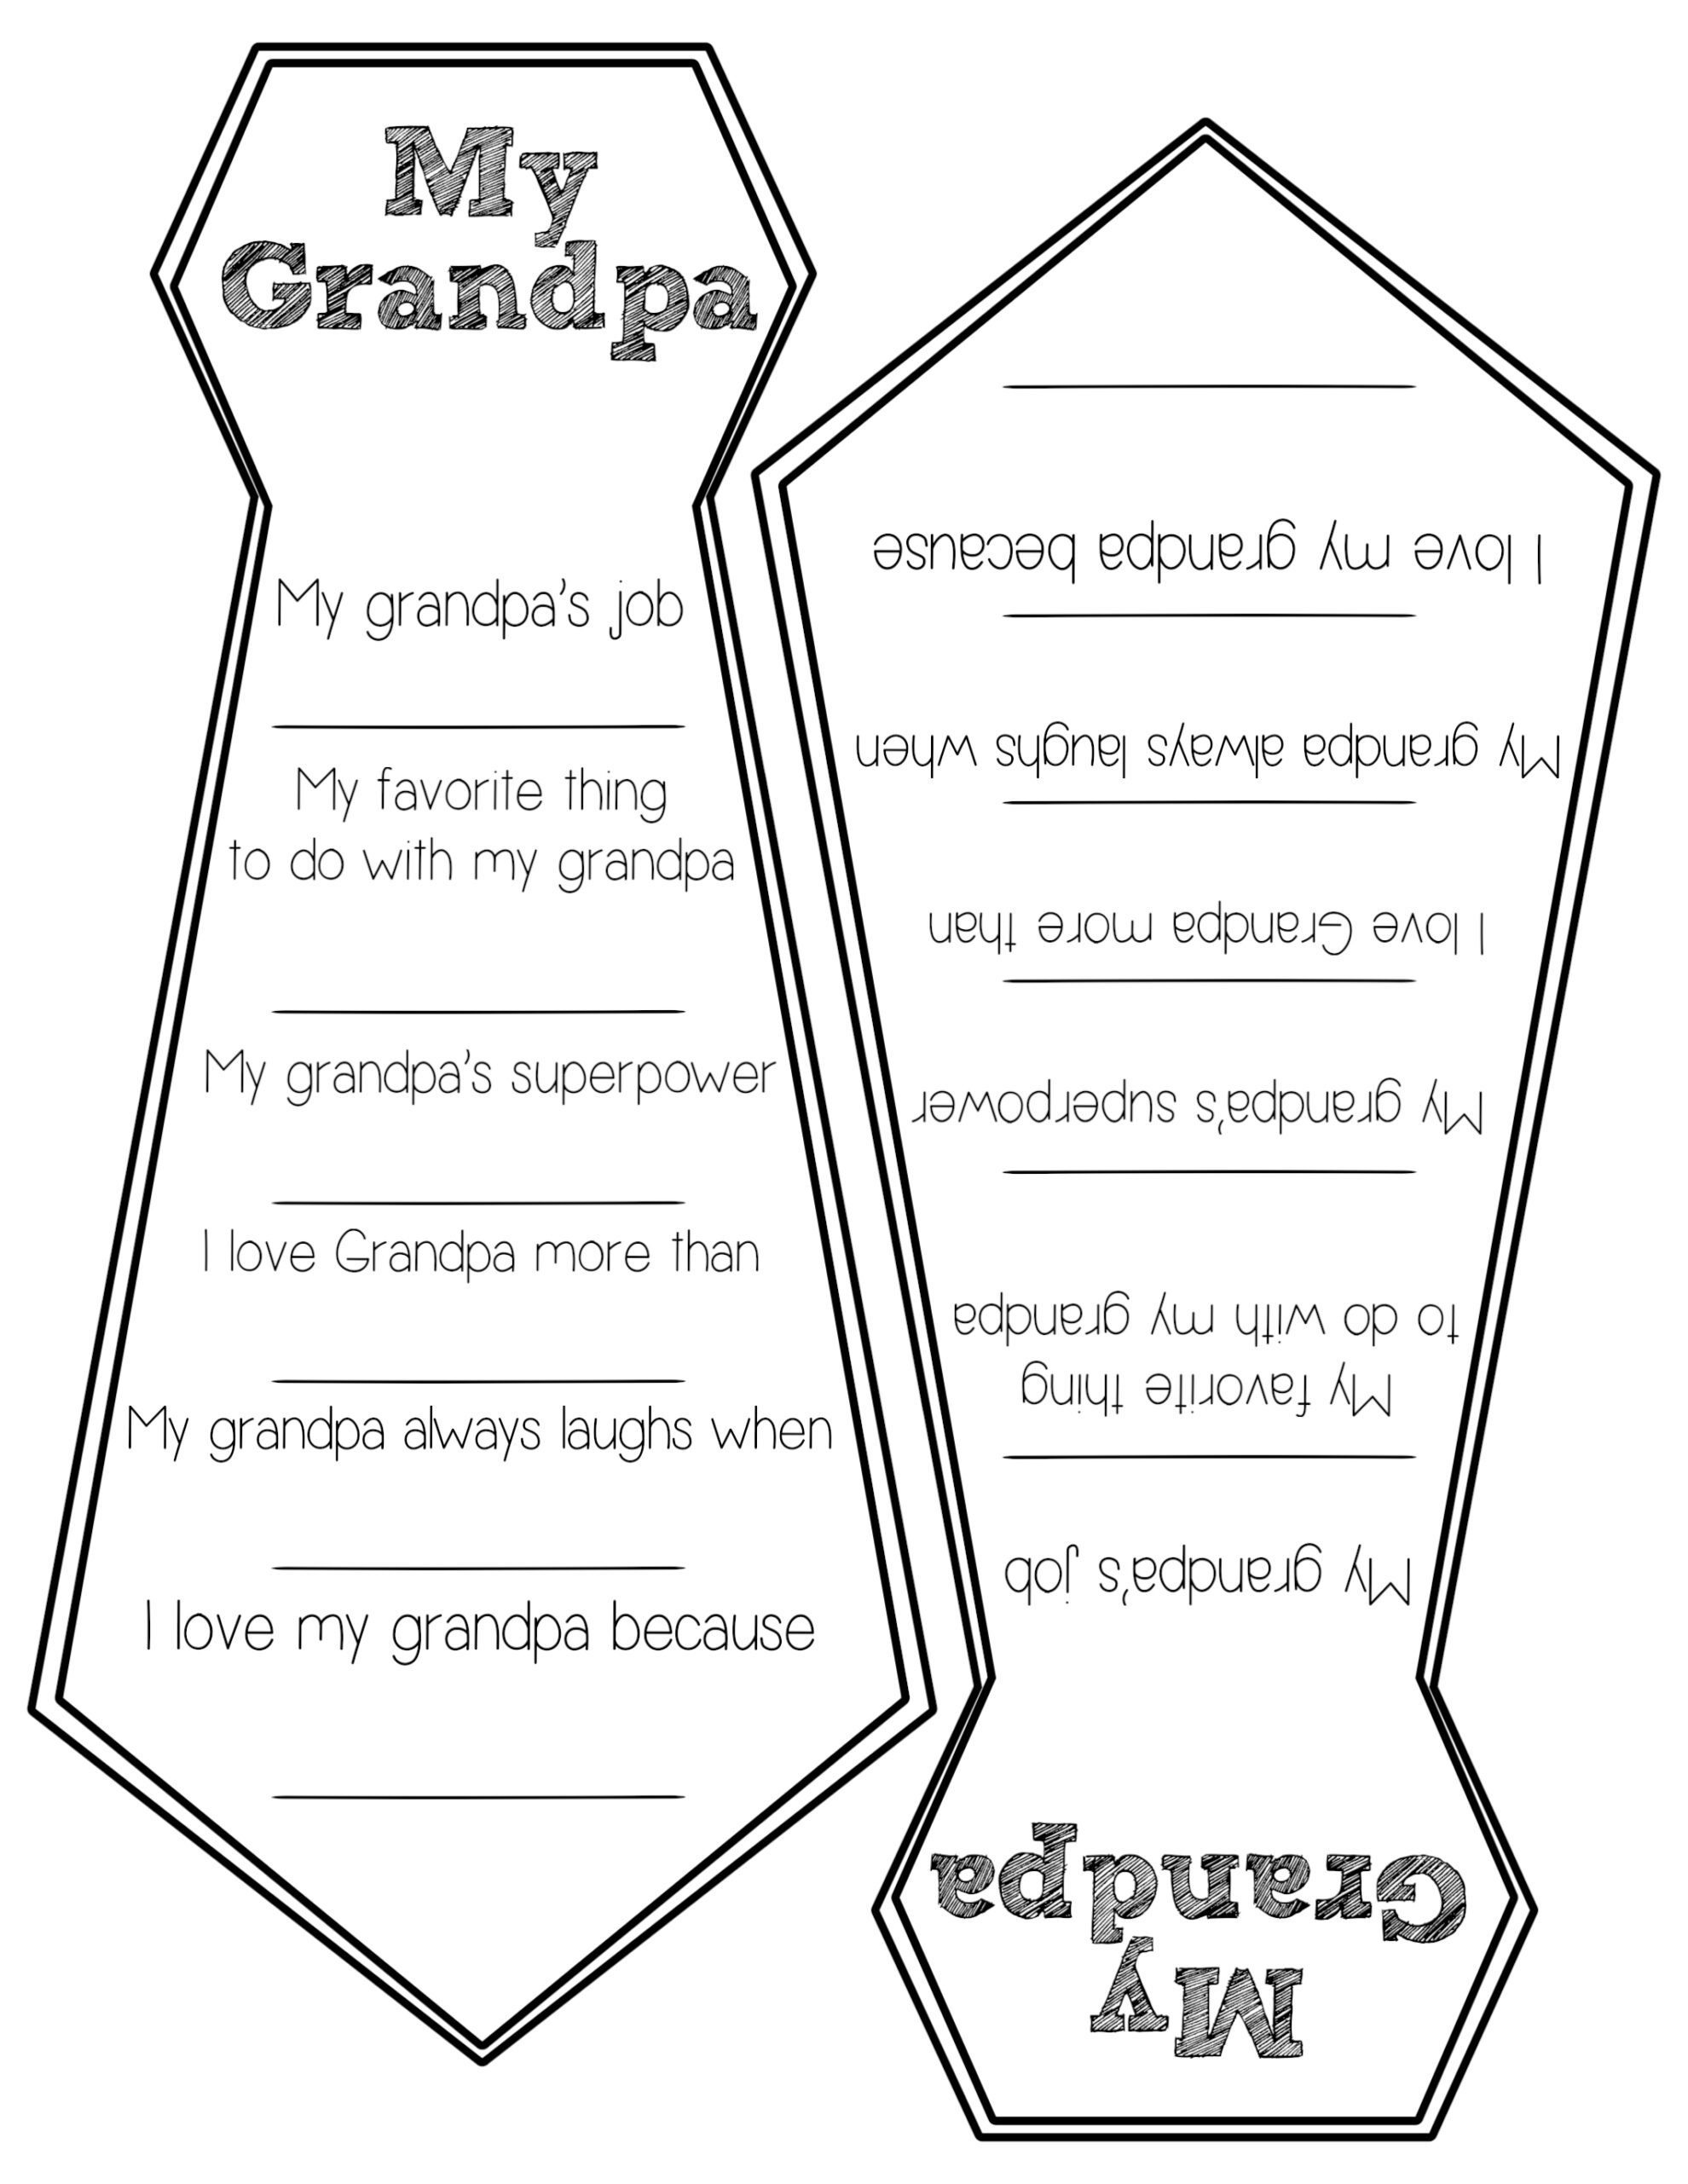 Father's Day Free Printable Cards - Paper Trail Design - Free Printable Happy Fathers Day Grandpa Cards